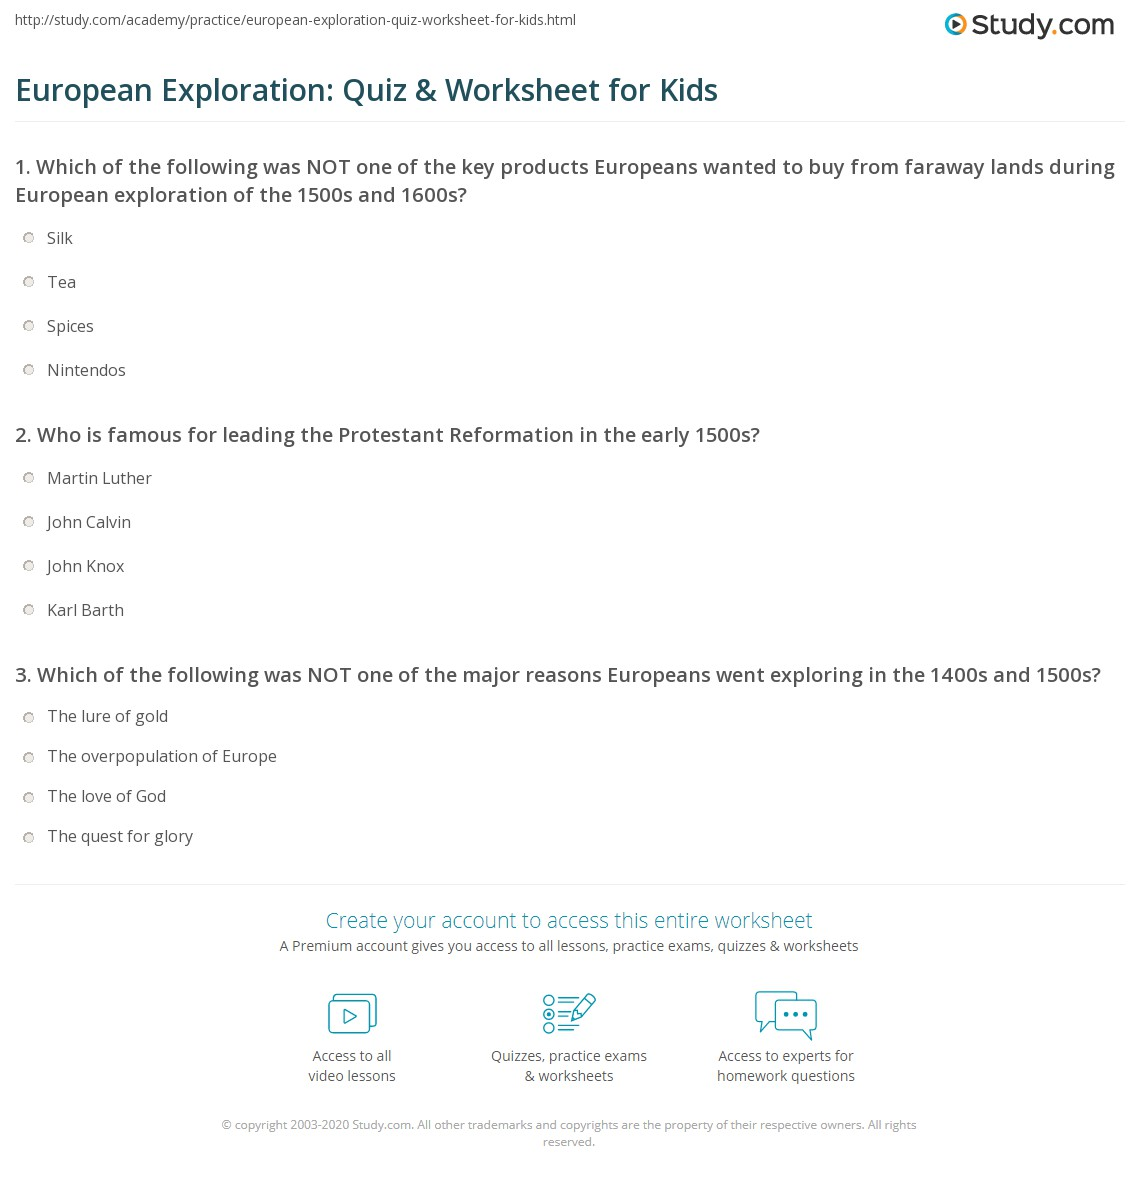 European Exploration Quiz Worksheet for Kids – Protestant Reformation Worksheet